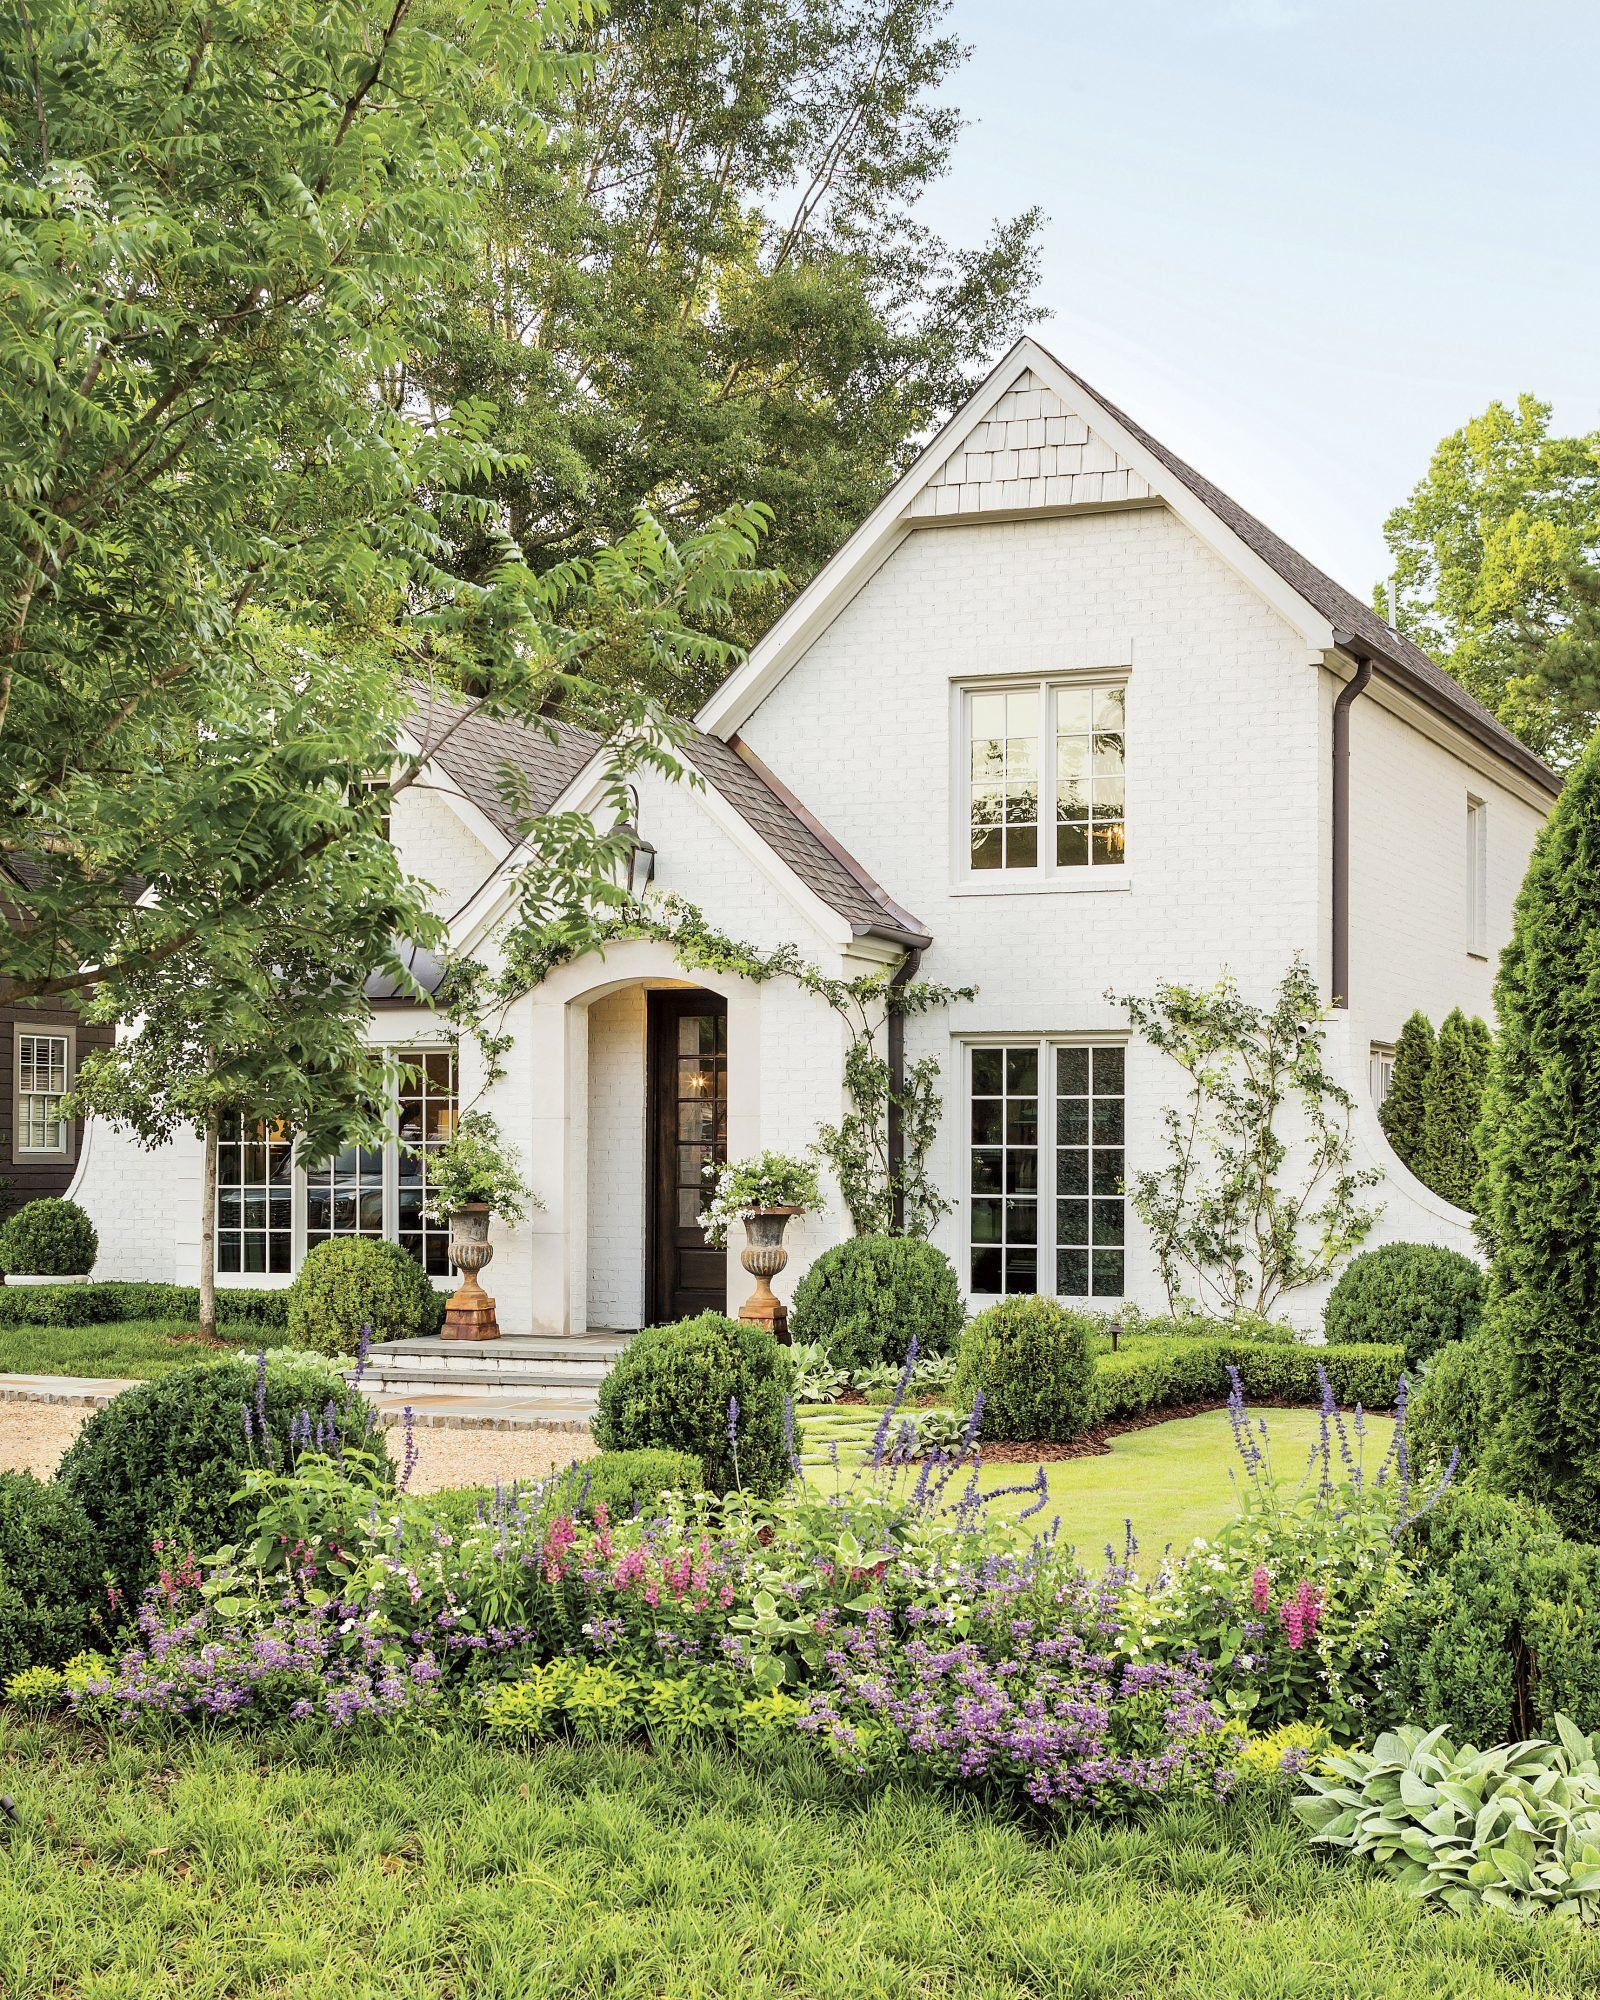 How Landscaping Added Instant Charm To This New Birmingham Home In 2020 White Brick Houses House Exterior Backyard Design